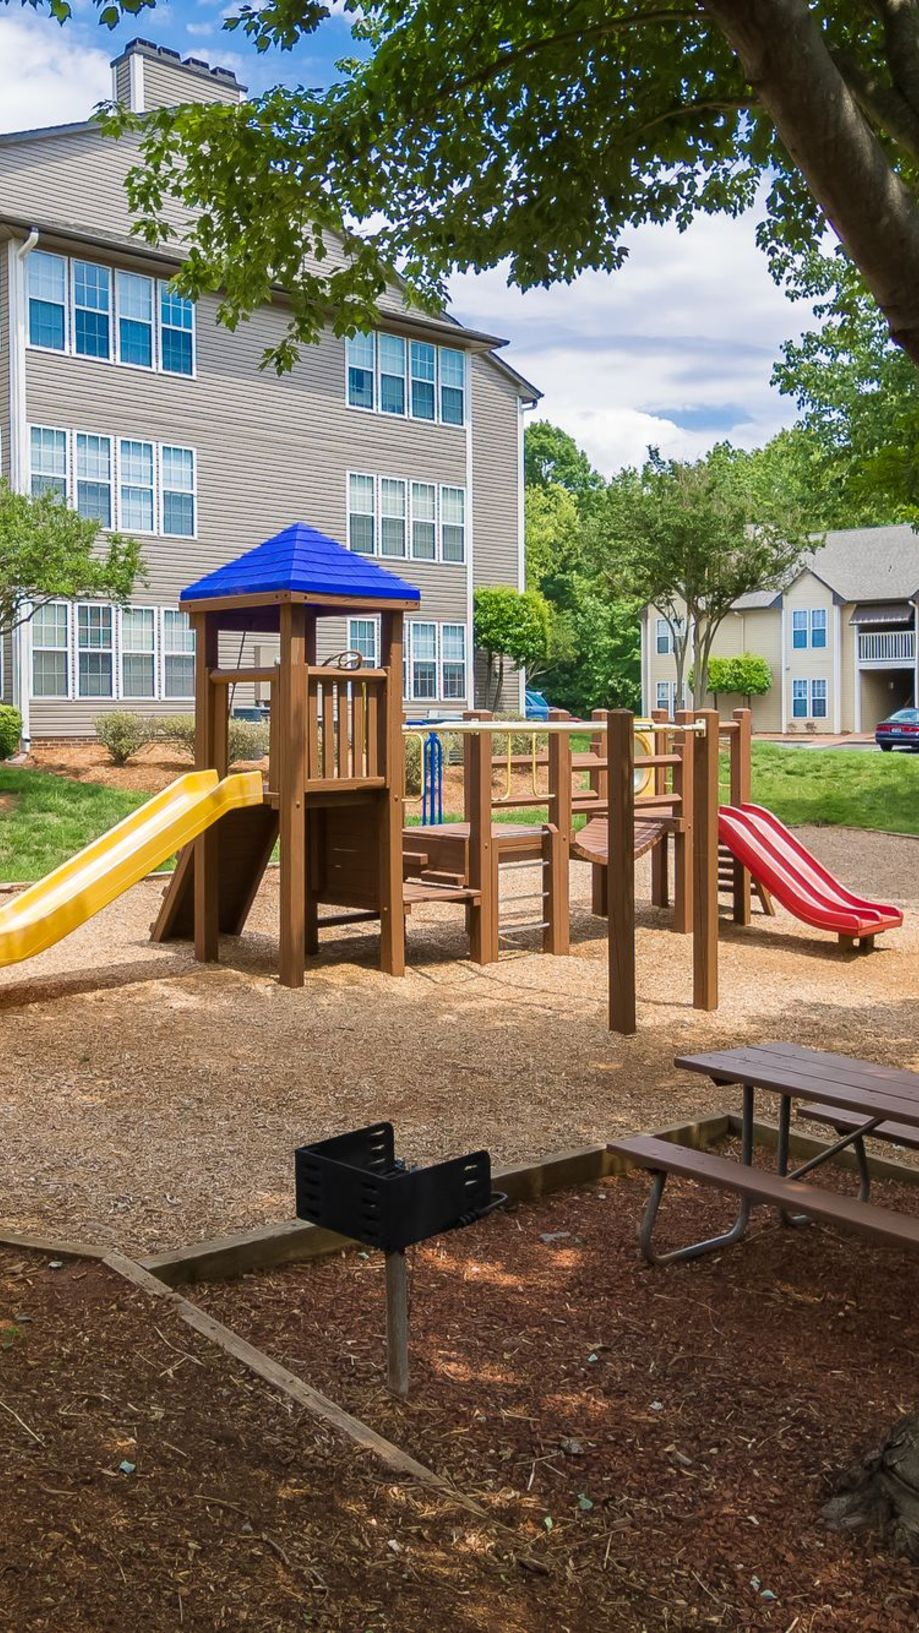 Apartments for Rent in Winston Salem, NC | Savannah Place - Home